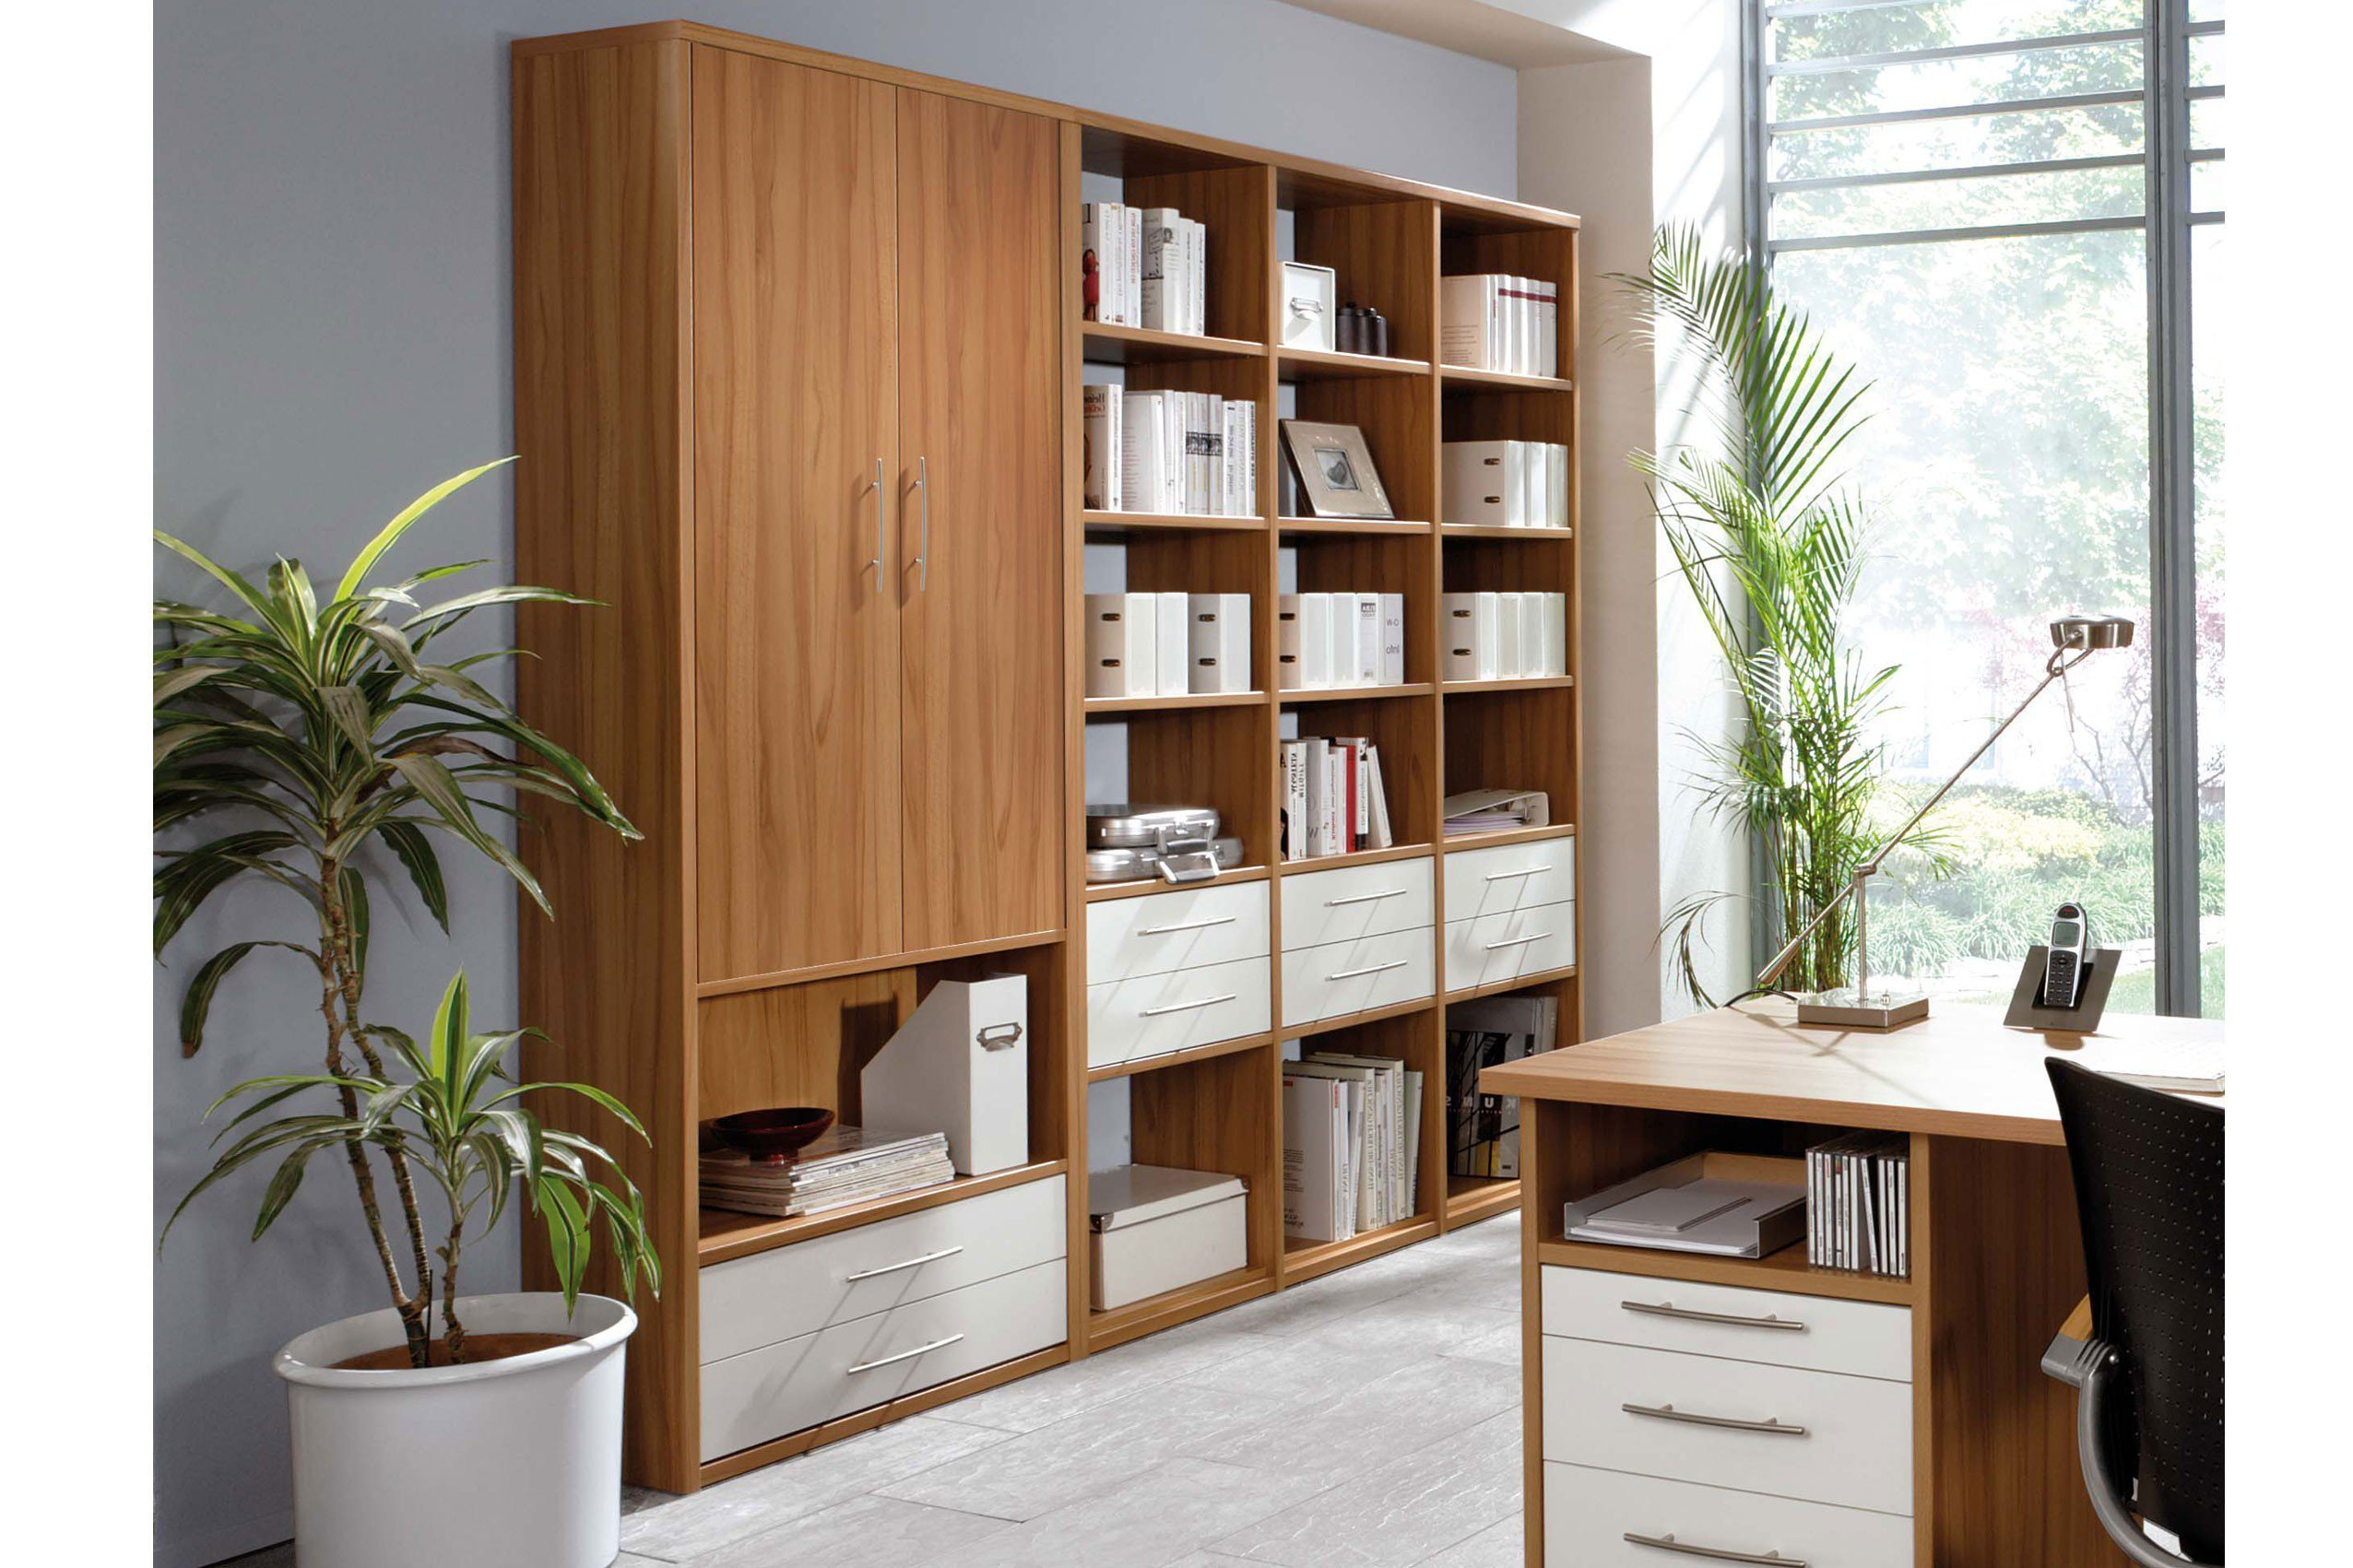 priess schrank home office in kernbuche nachbildung m bel letz ihr online shop. Black Bedroom Furniture Sets. Home Design Ideas